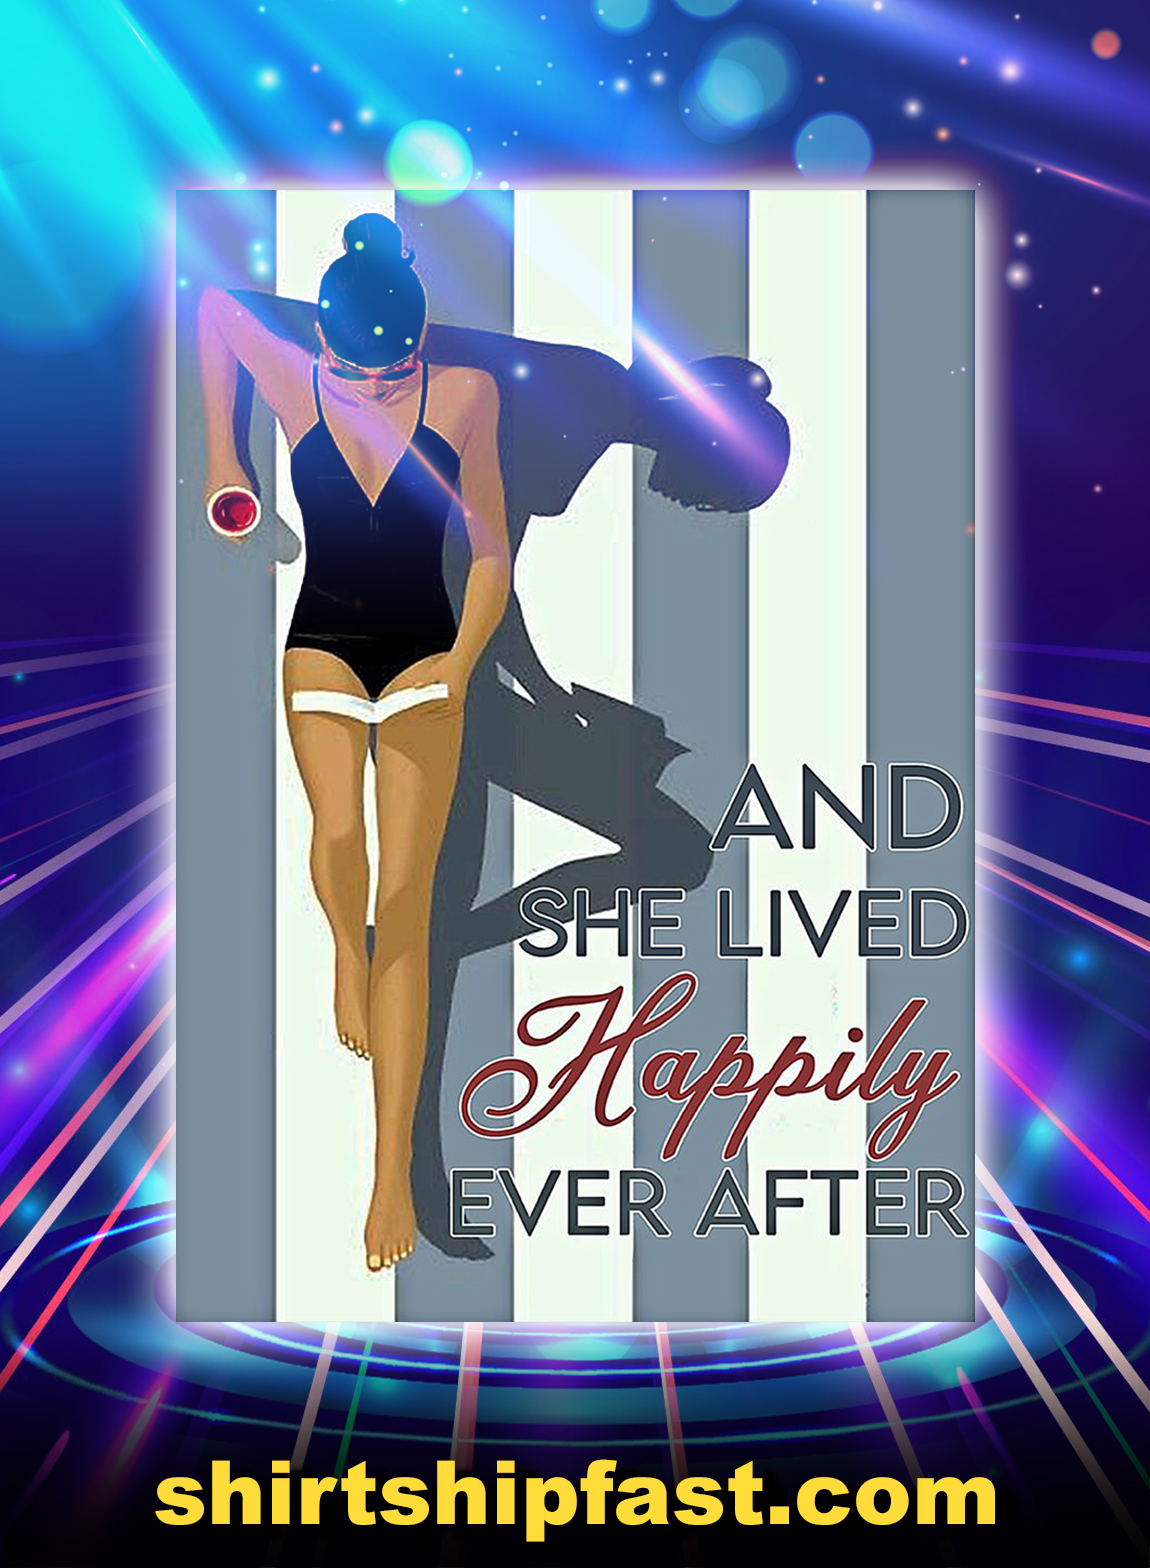 Pool girl reading and she lived happily ever after poster - A3